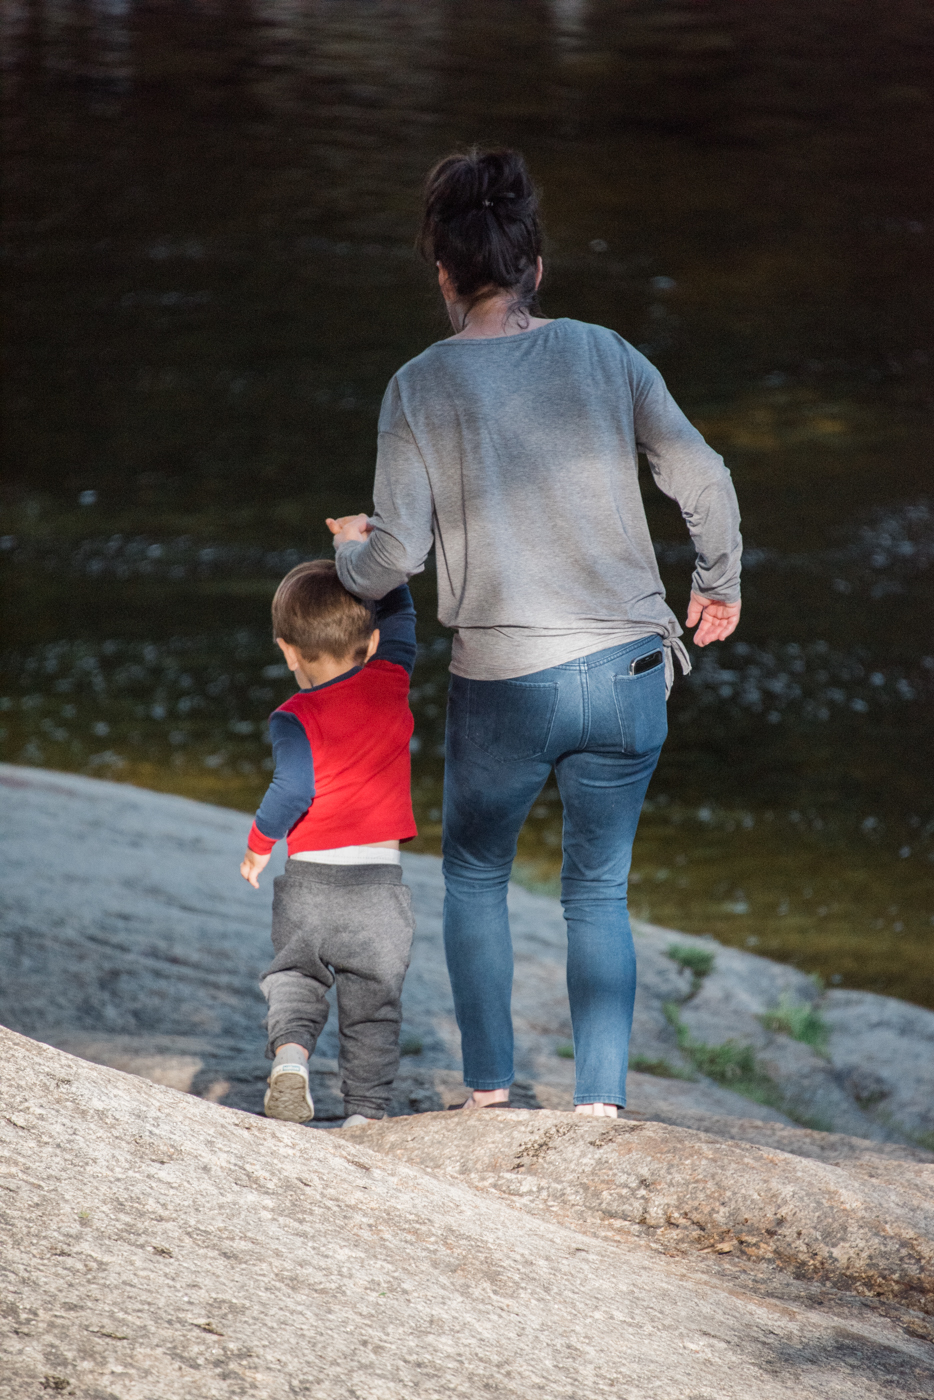 grandma and grandson walk down to the pemigewasset river in new hampshire, photographed by jamie bannon photography.